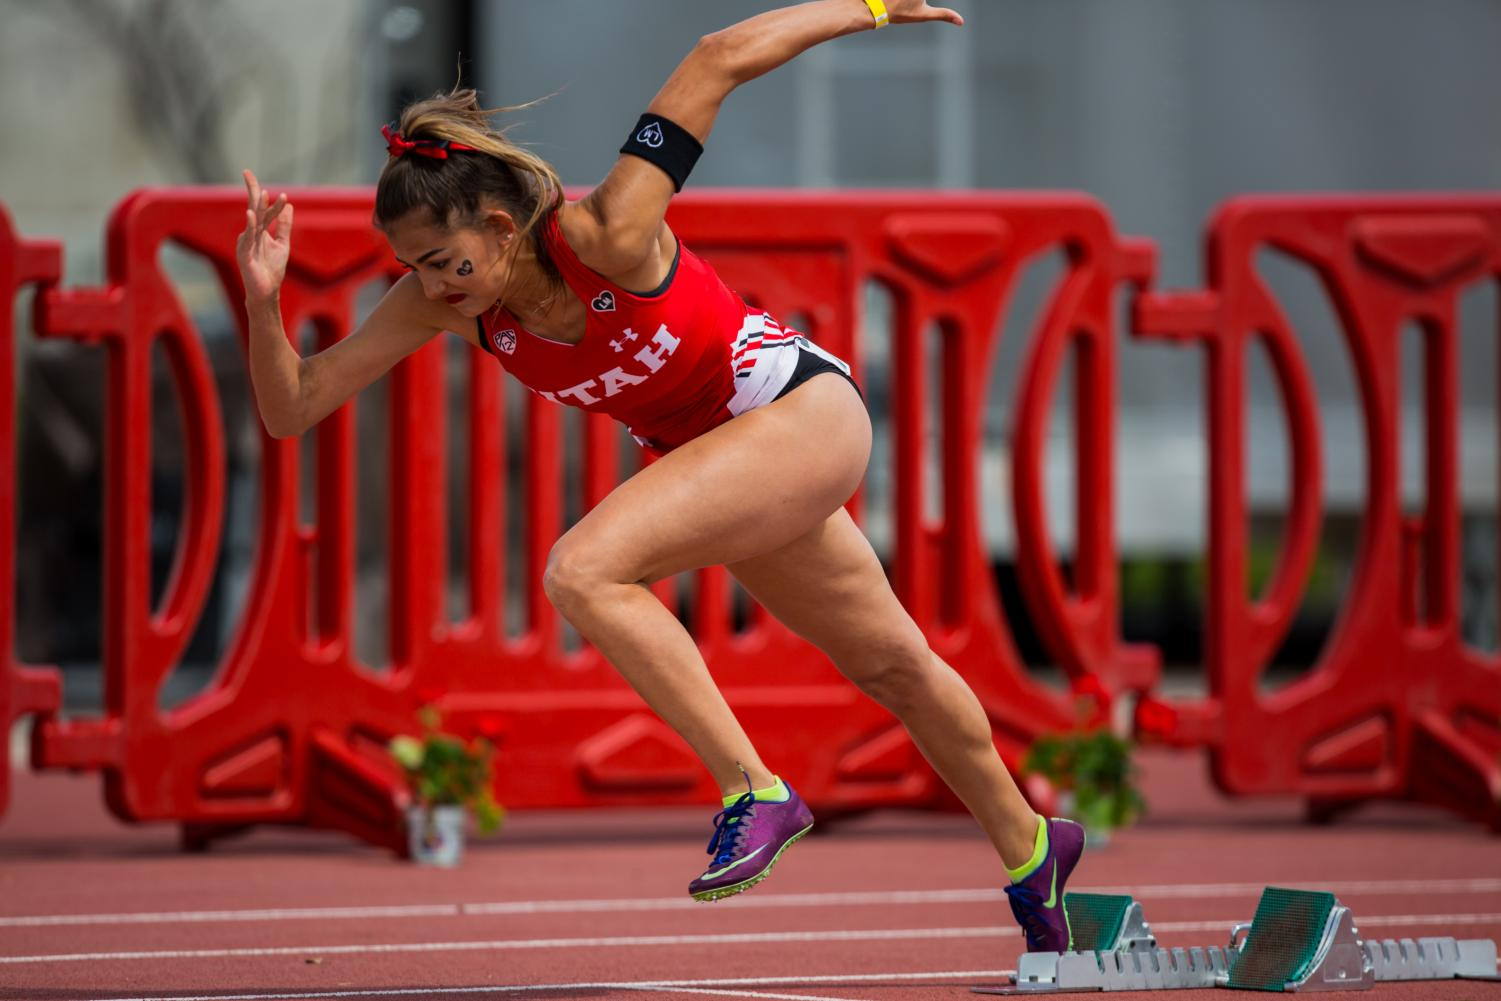 University of Utah junior hurdler Brooke Martin started out of the blocks during the Women's 400 Meter Hurdles in an NCAA Track and Field meet at the McCarthey Family Track and Field Complex in Salt Lake City on Saturday April 13, 2019.(Photo by Curtis Lin | Daily Utah Chronicle)